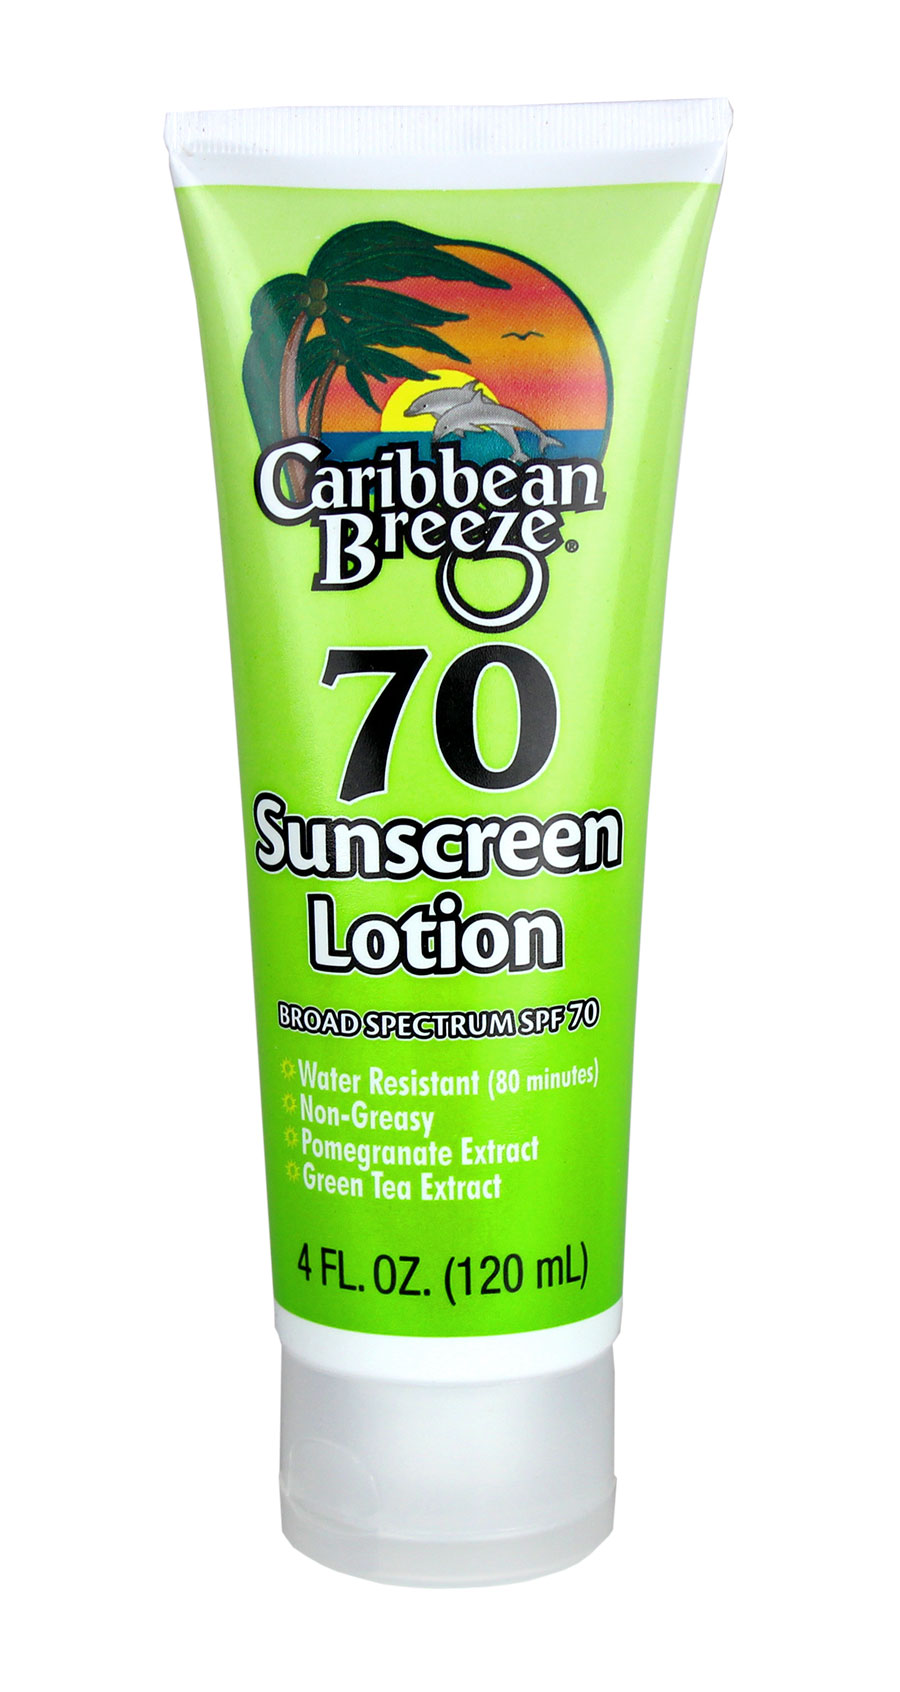 Caribbean Breeze Sunscreen SPF 70 Lotion